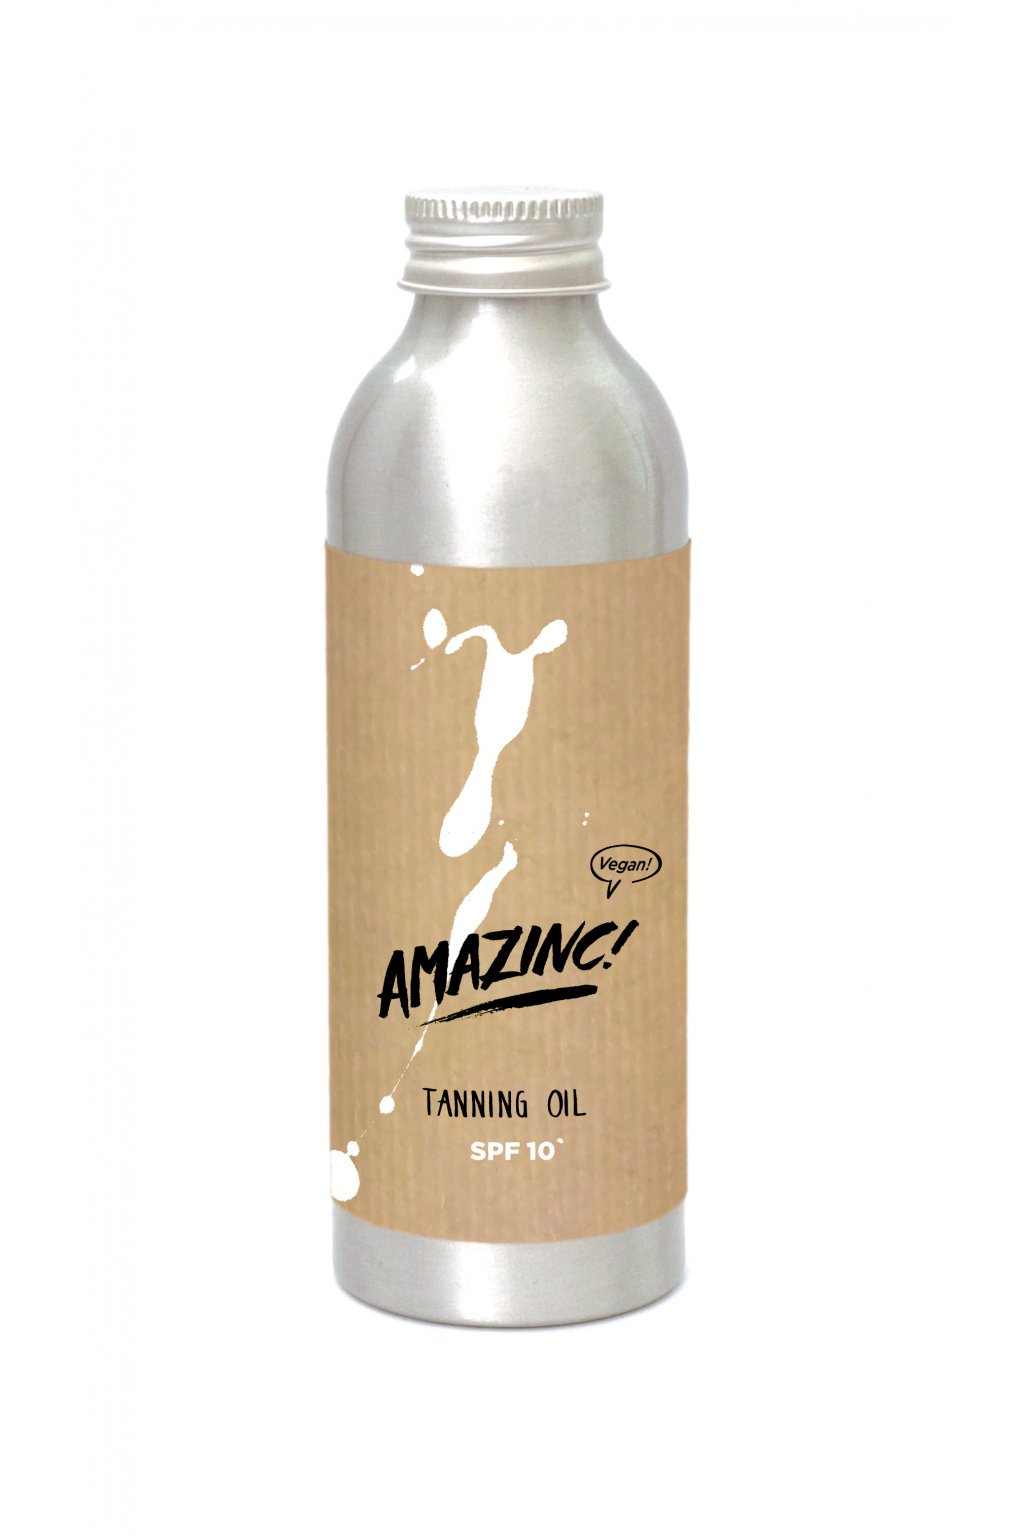 11 TanningOil Packaging Mockup Alu Bottle 150ml